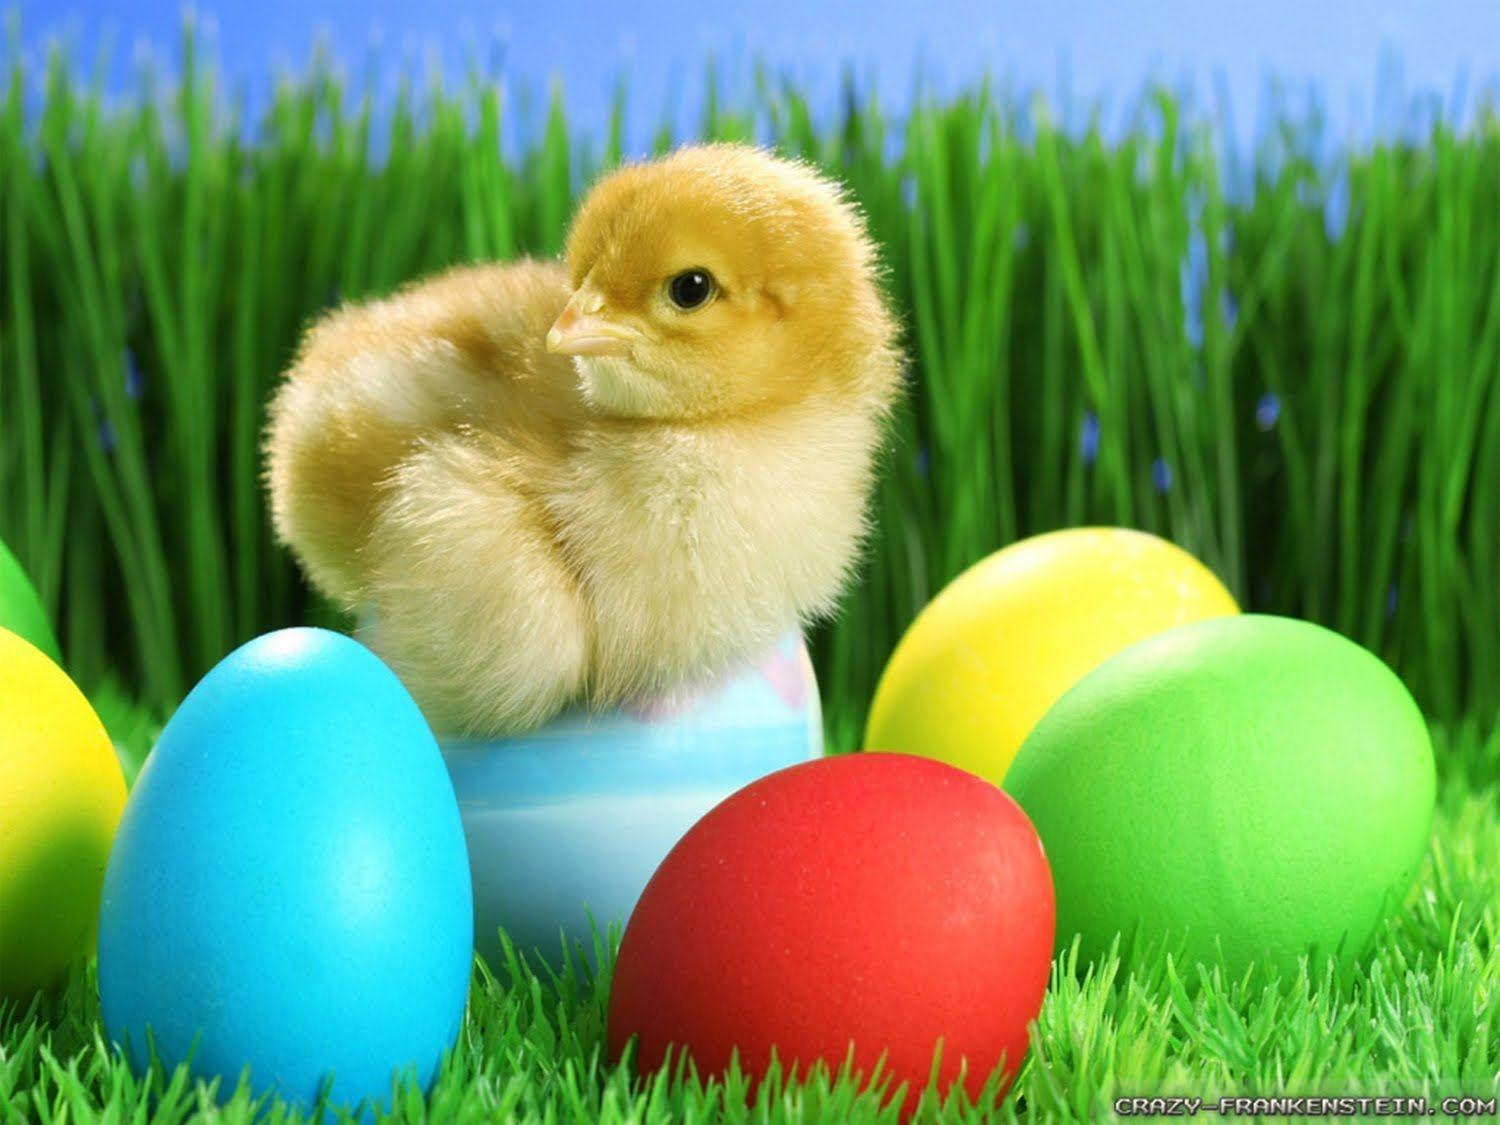 gLaMoRoUs bLoG: Easter Wallpapers